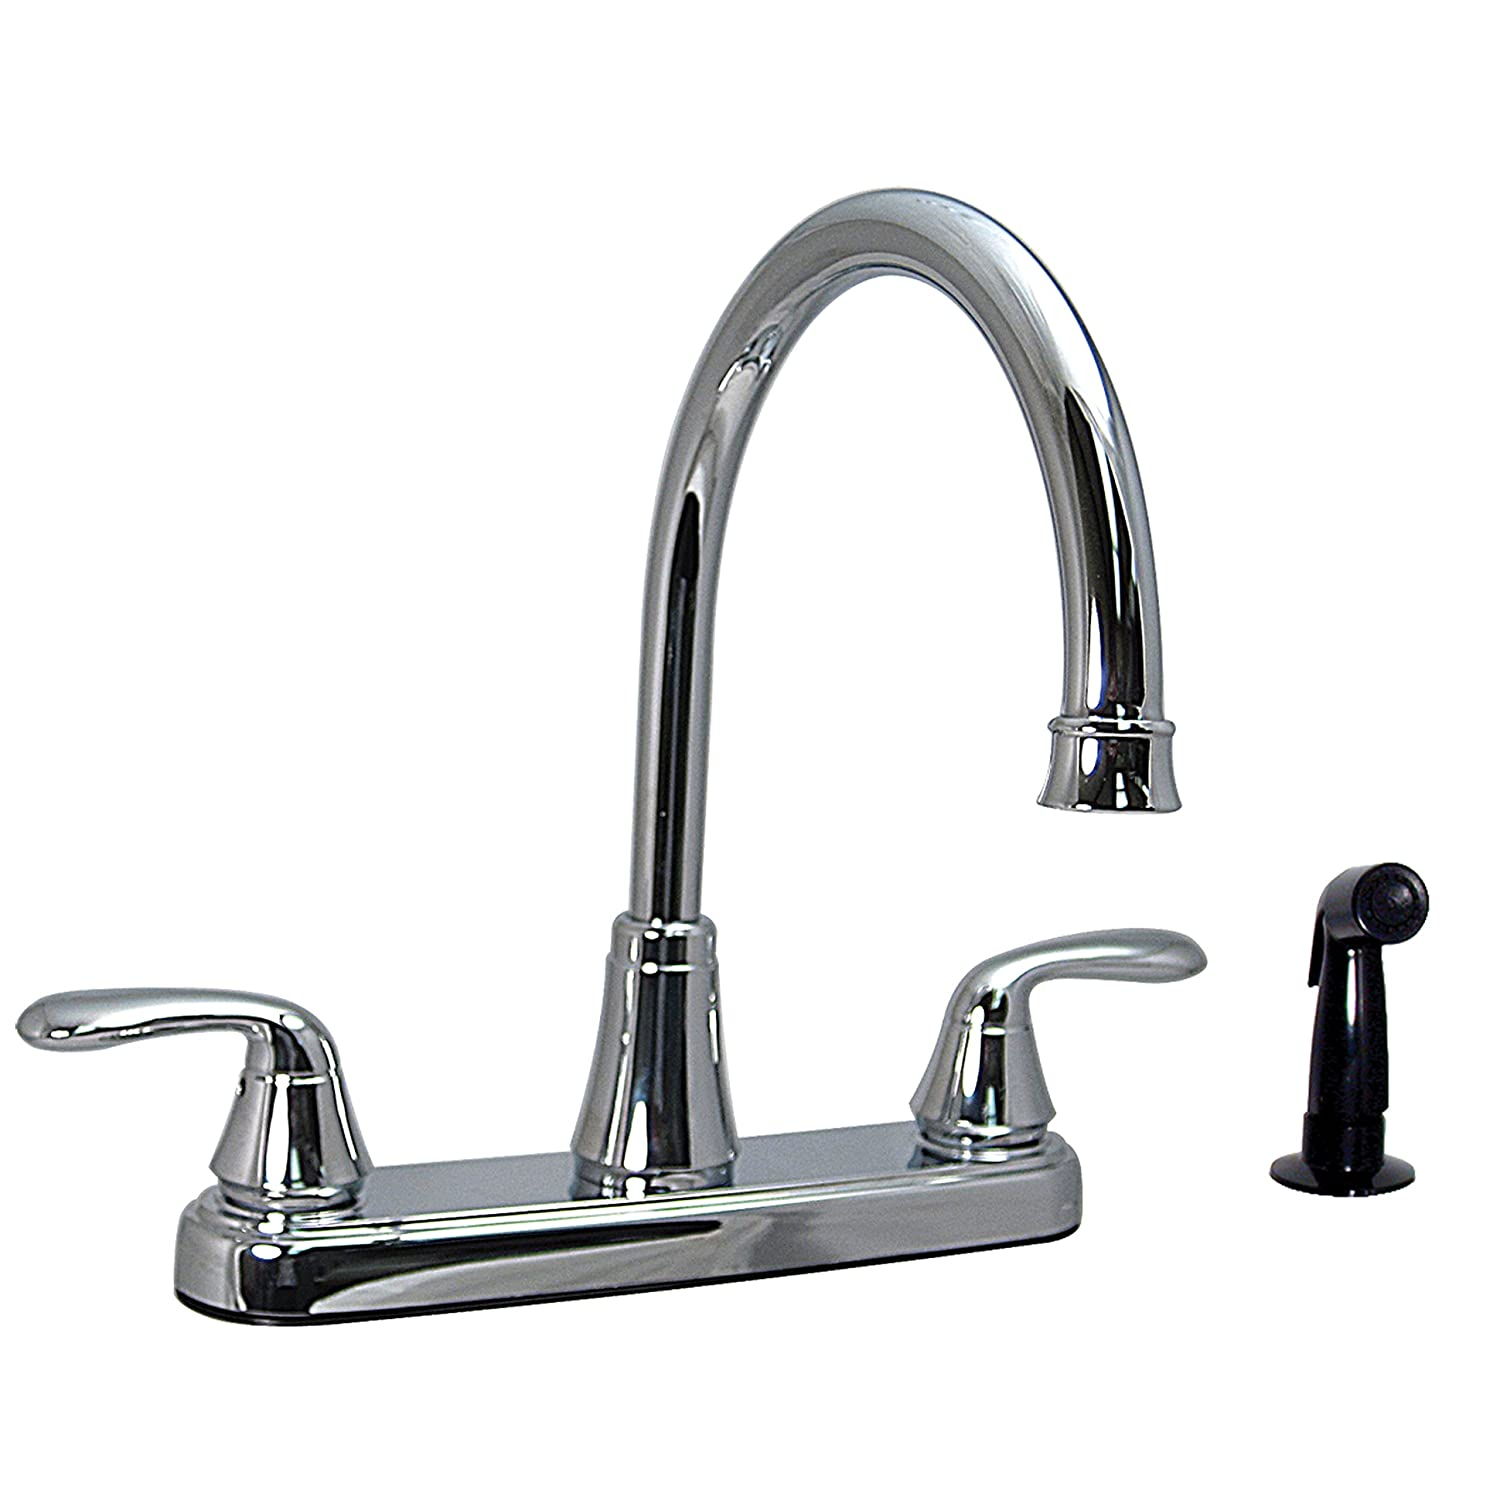 Phoenix PF231302 Two-Handle Kitchen High-Arc Faucet, Chrome